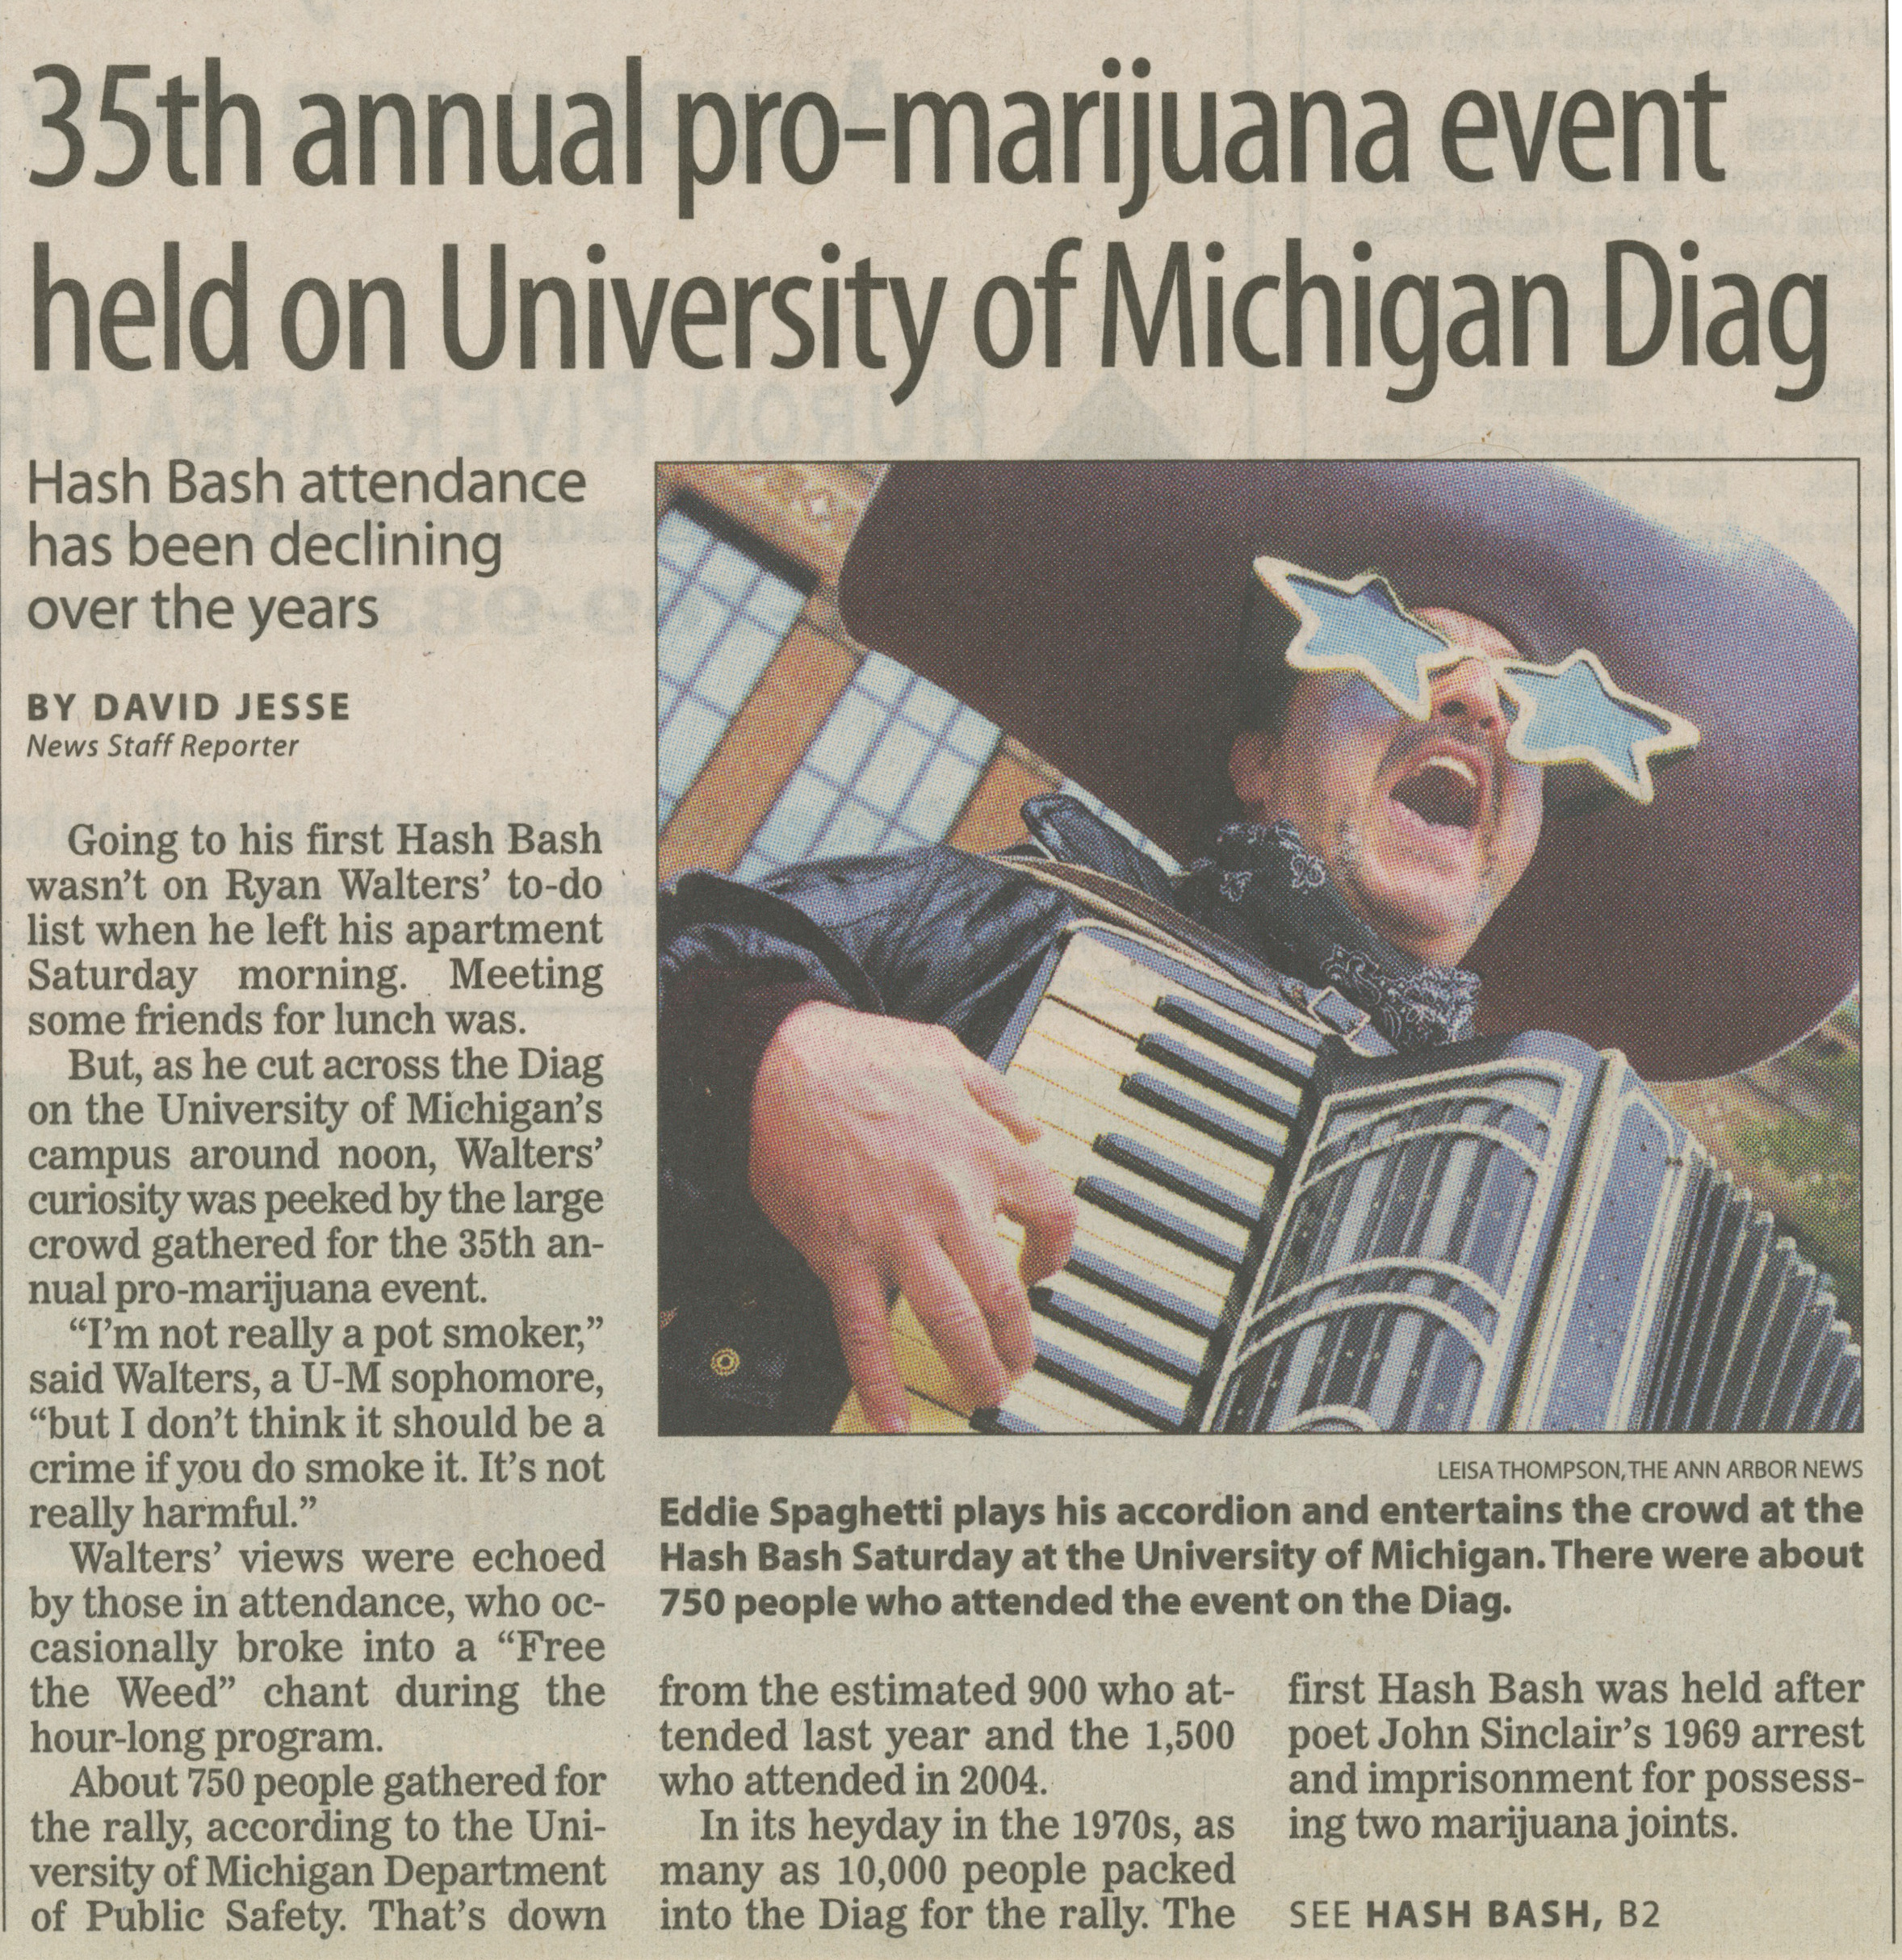 35th Annual Pro-Marijuana Event Held On University Of Michigan Diag image